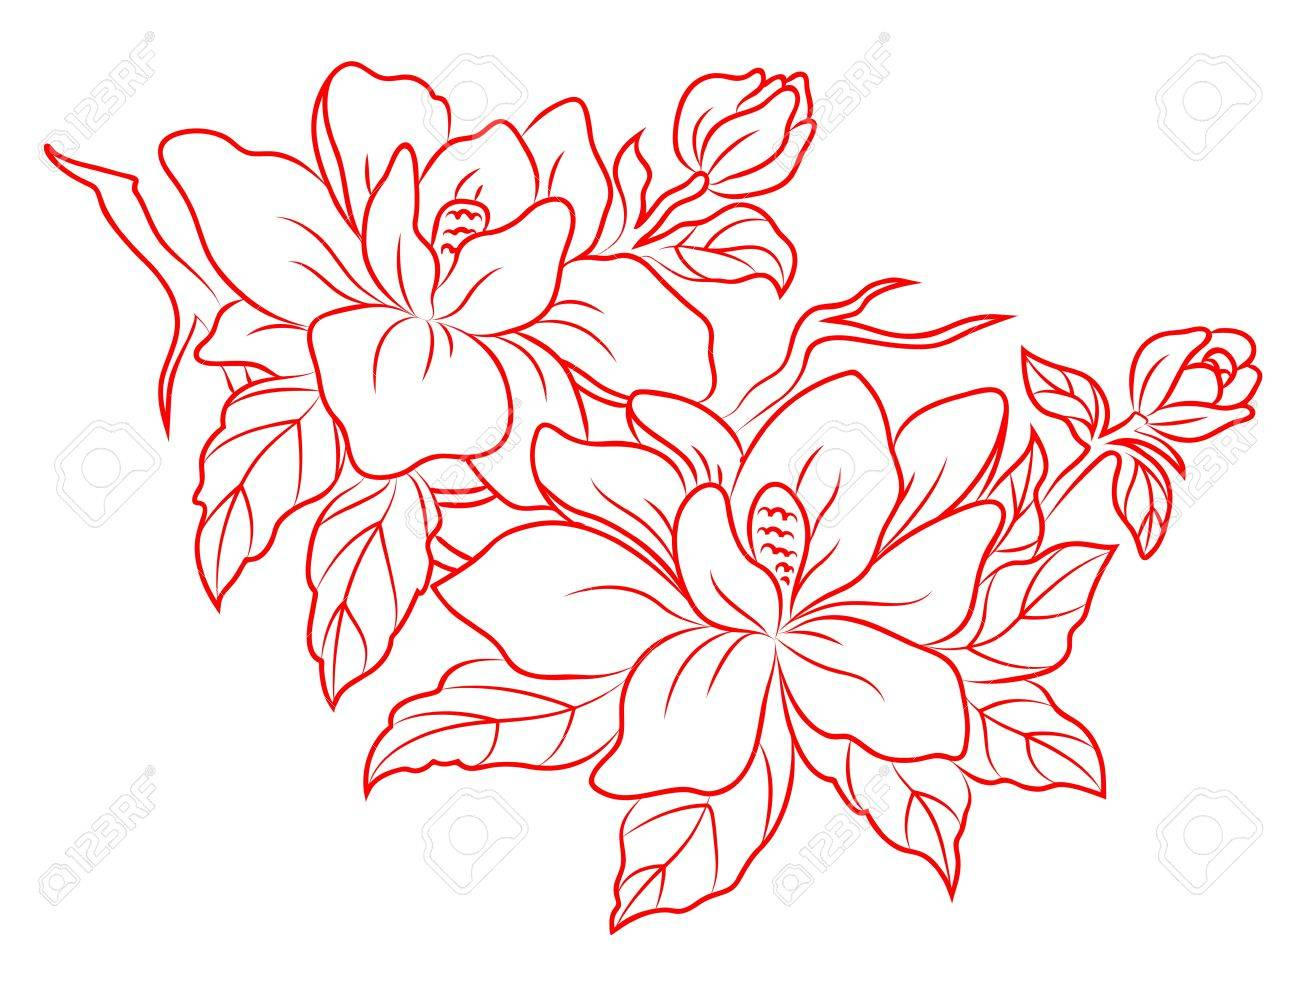 Flowers in chinese retro style for embellish design Stock Vector - 14833014